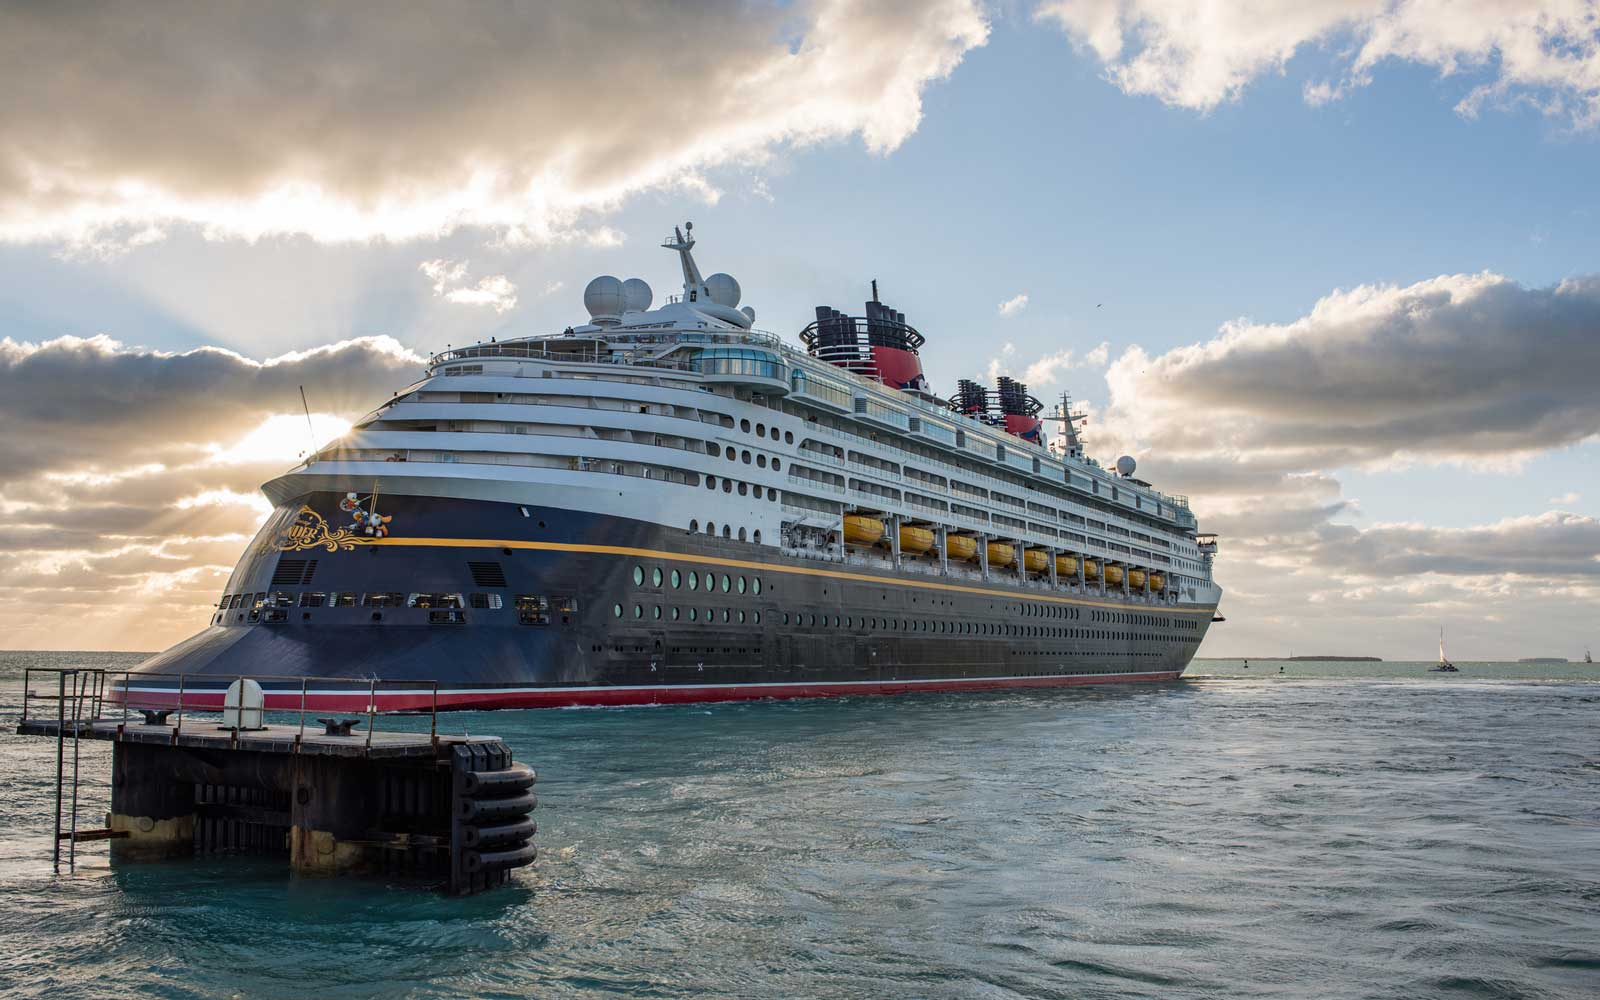 Walt Disney Cruise Line in Key West, Florida.